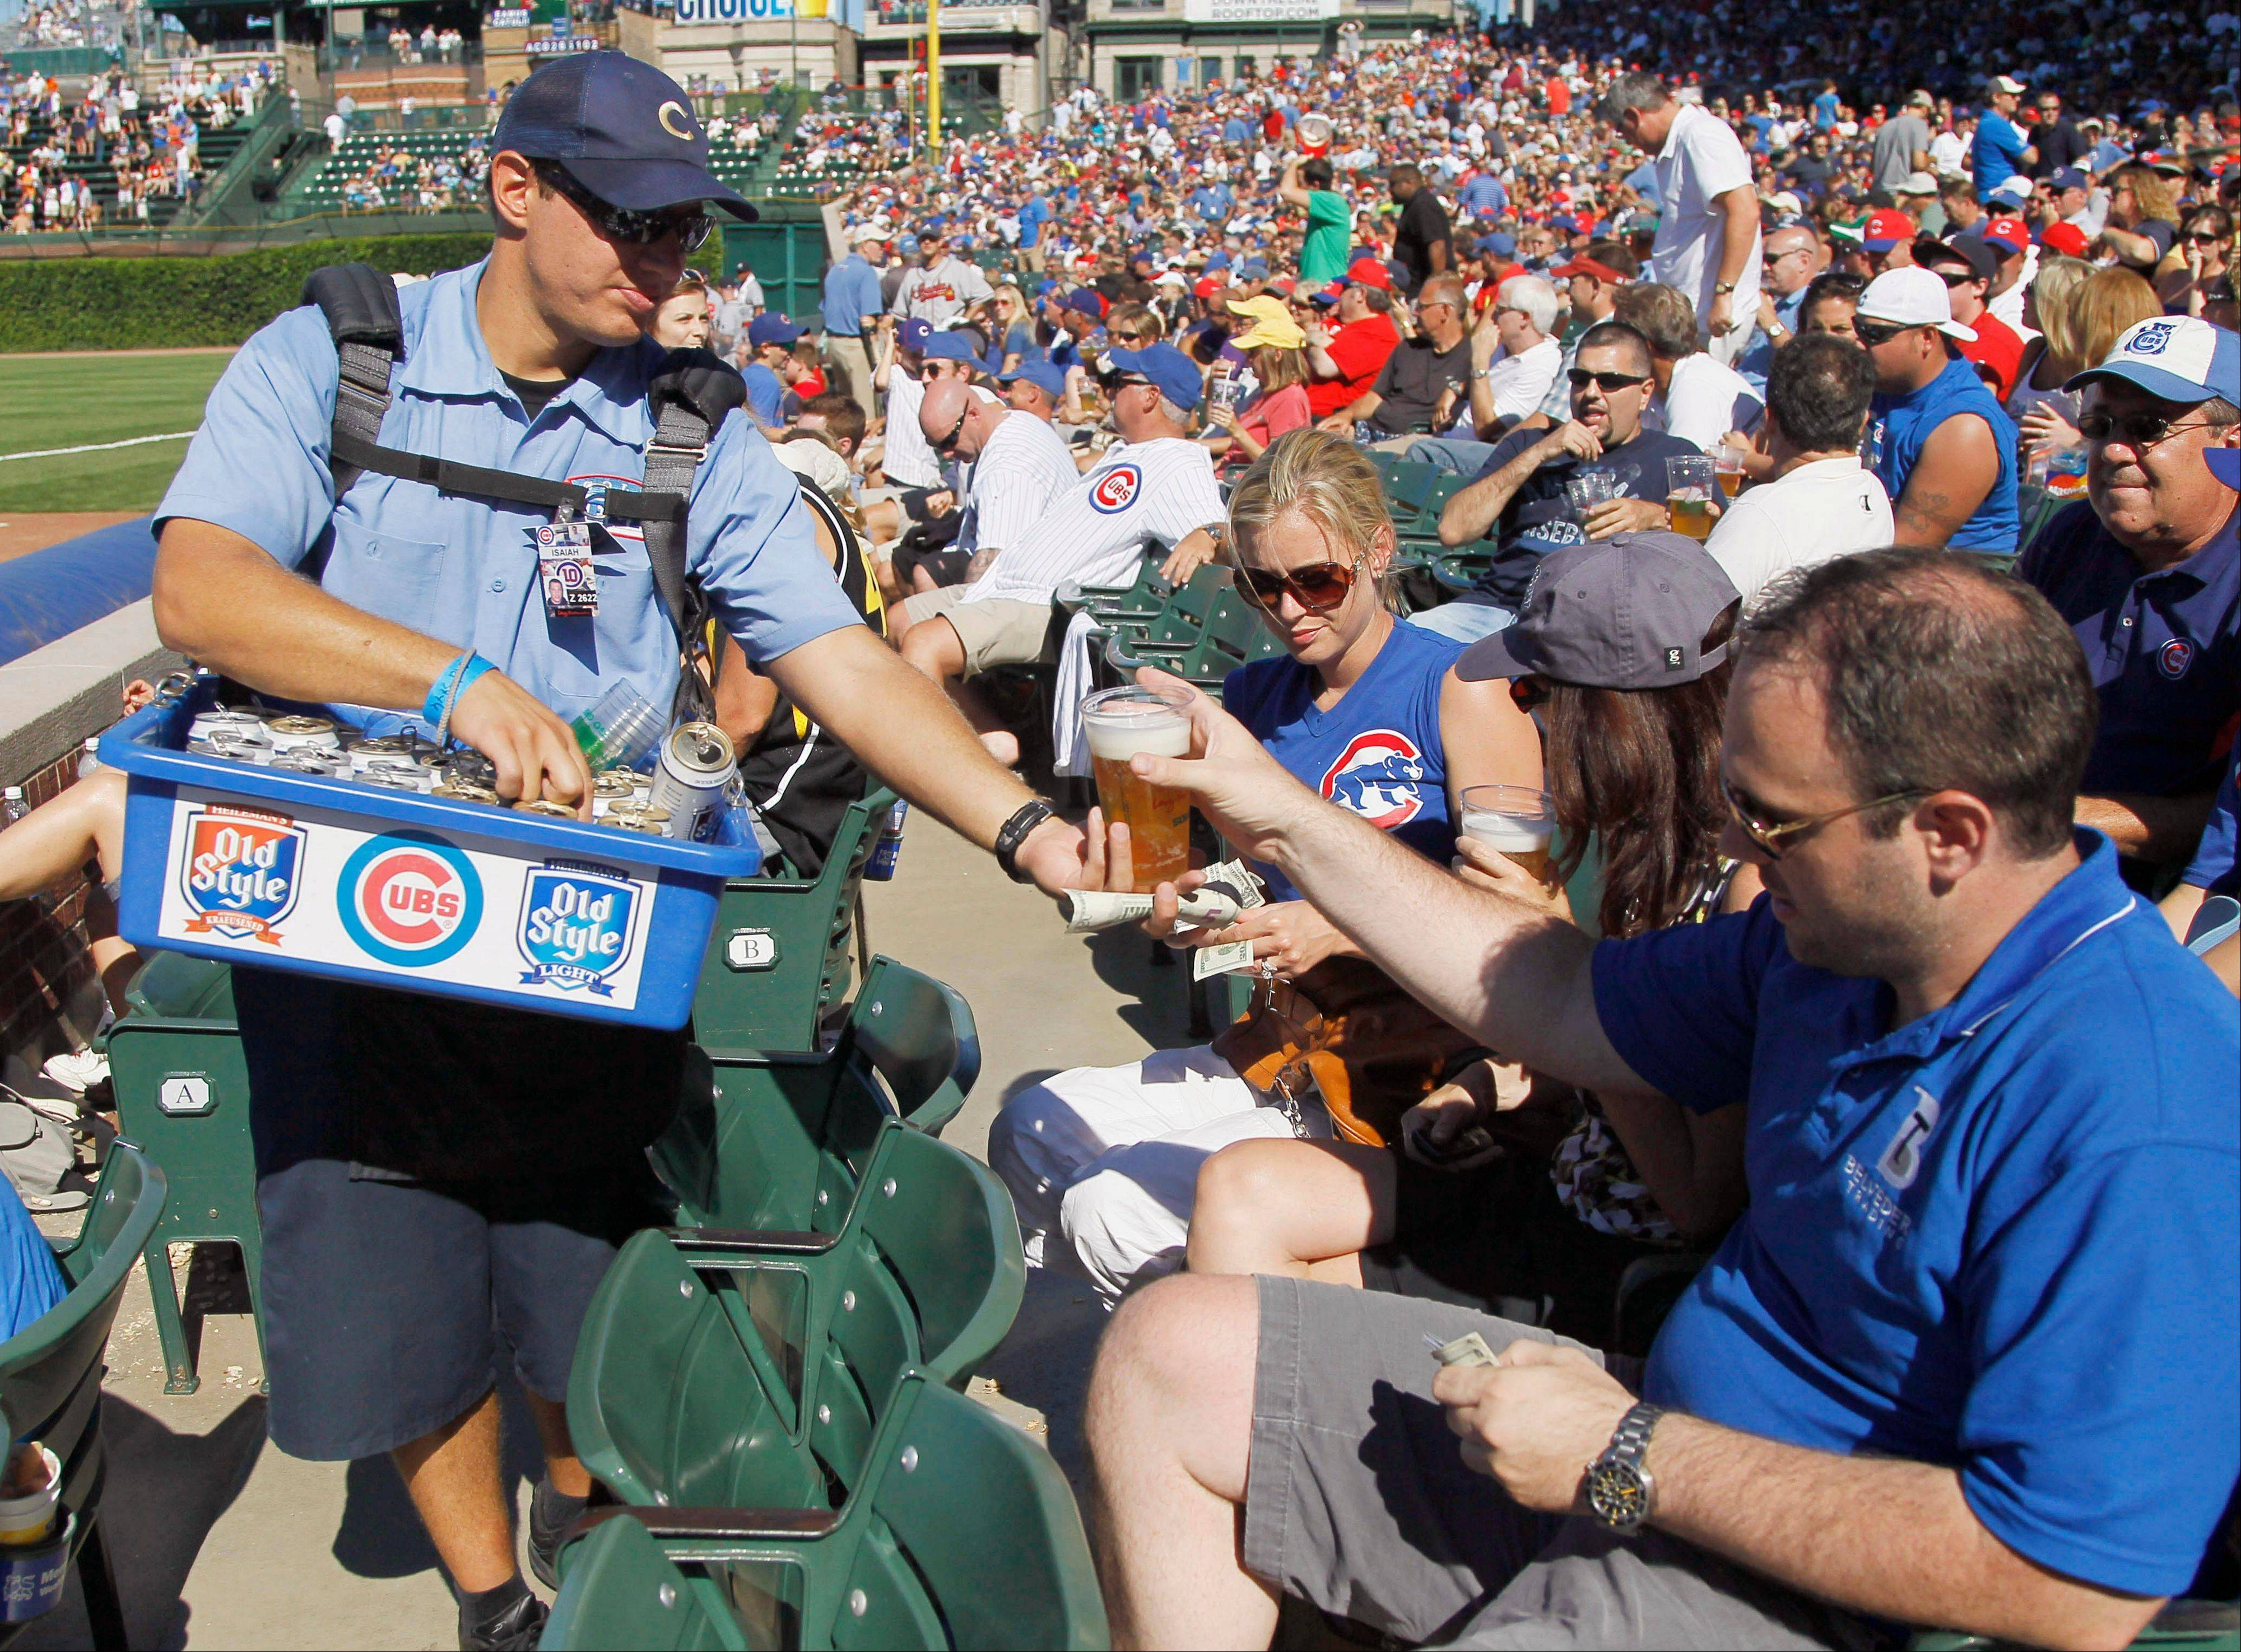 A vendor sells an Old Style beer to a fan during a Cubs game at Wrigley Field. Pabst Brewing Company threatened earlier this year to pull Old Style from the ballpark, but on Wednesday the Cubs and Pabst announced a deal.